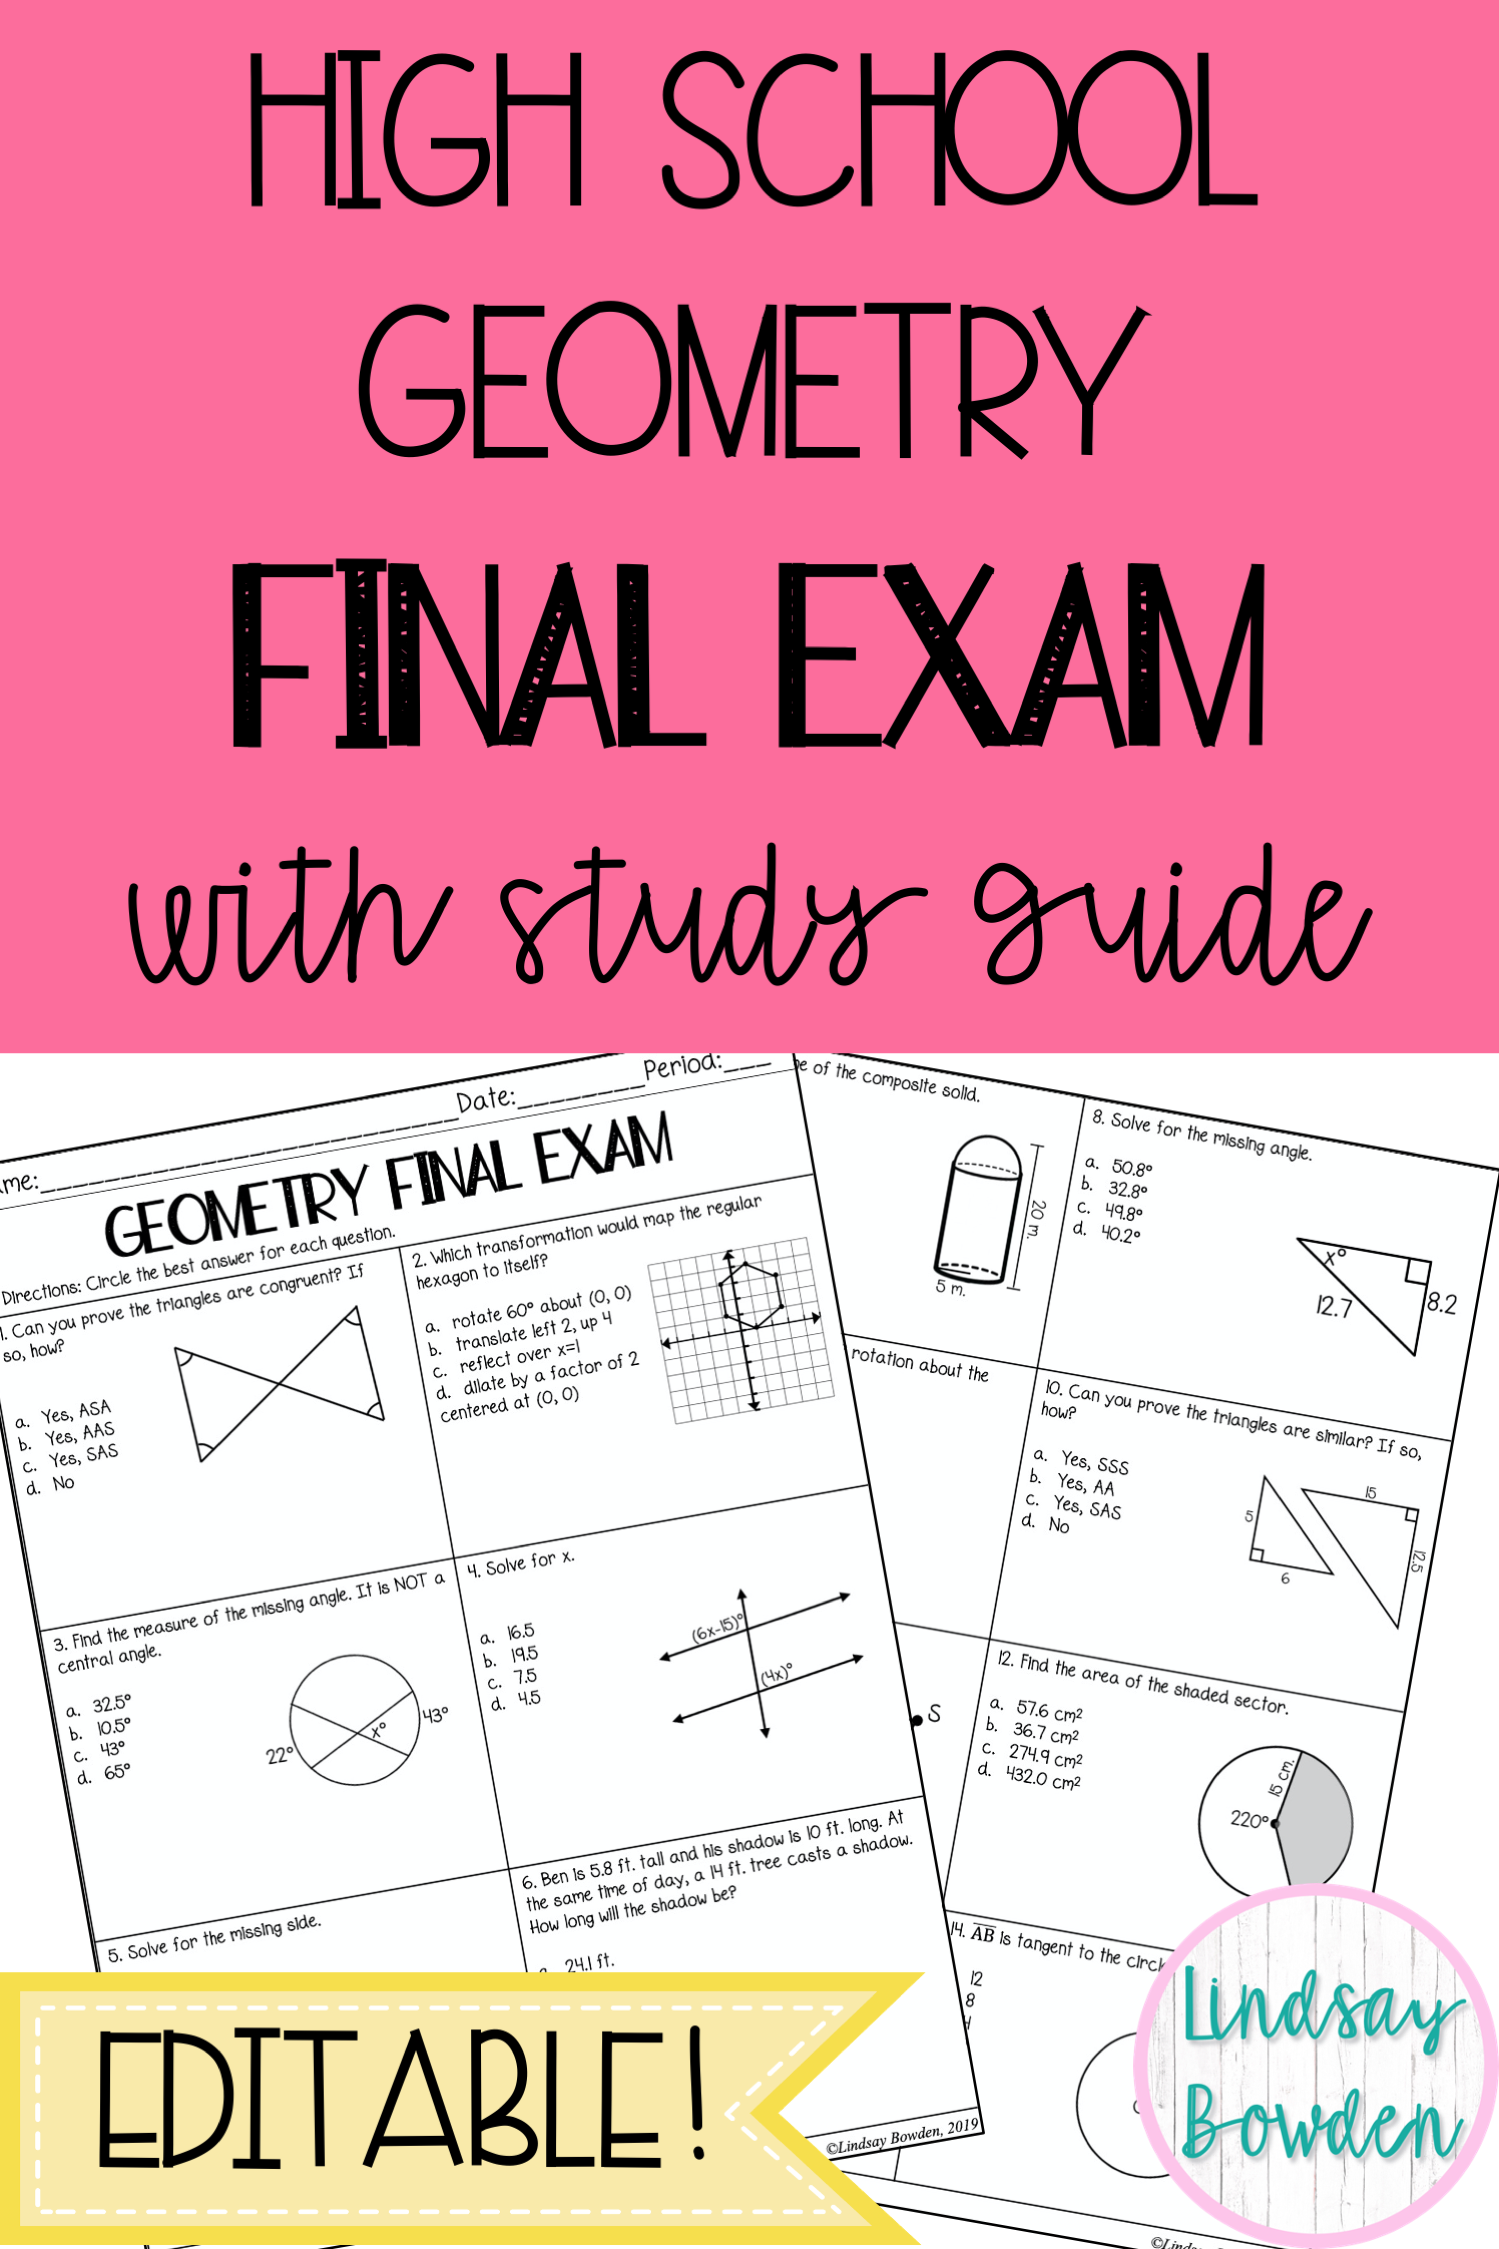 Geometry Final Exam With Study Guide In 2020 Geometry High School Study Guide Final Exams